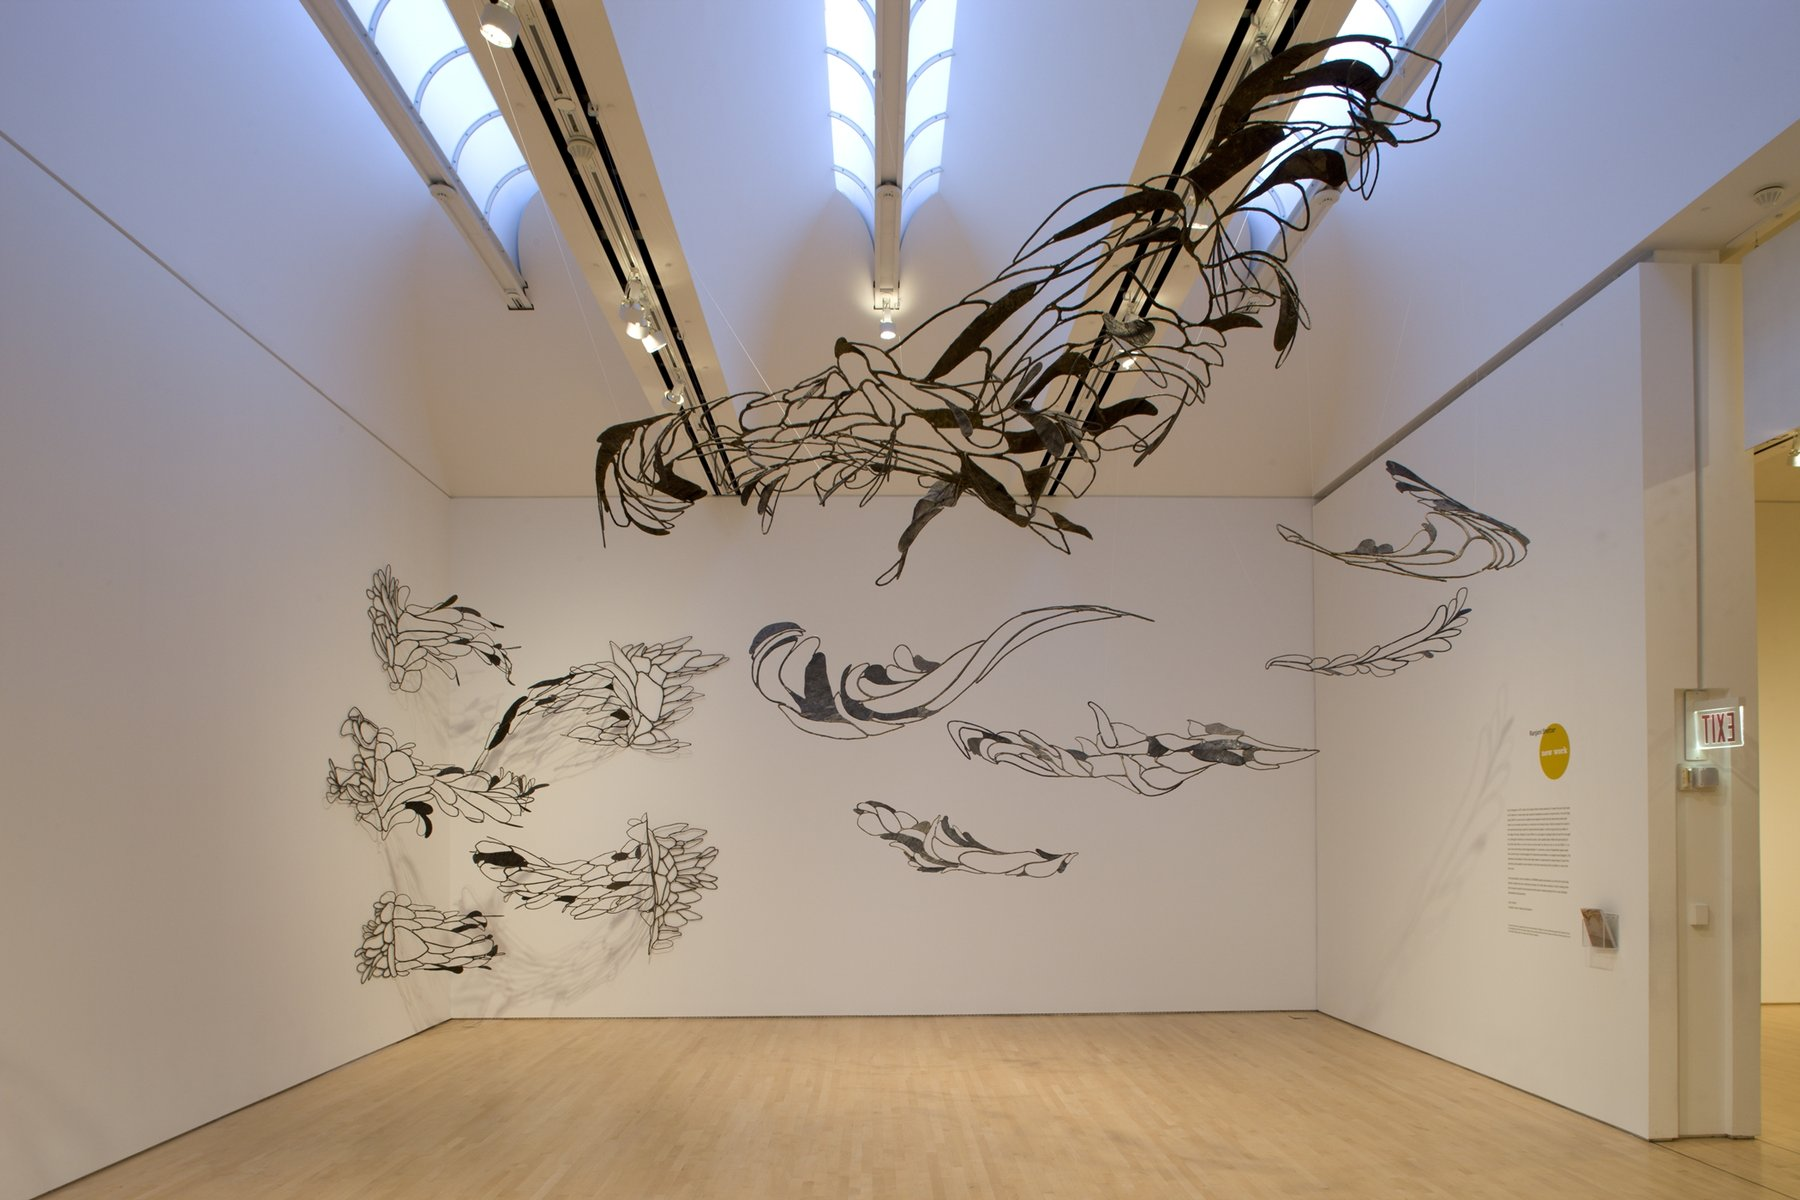 A room filled with hanging metallic sculptures